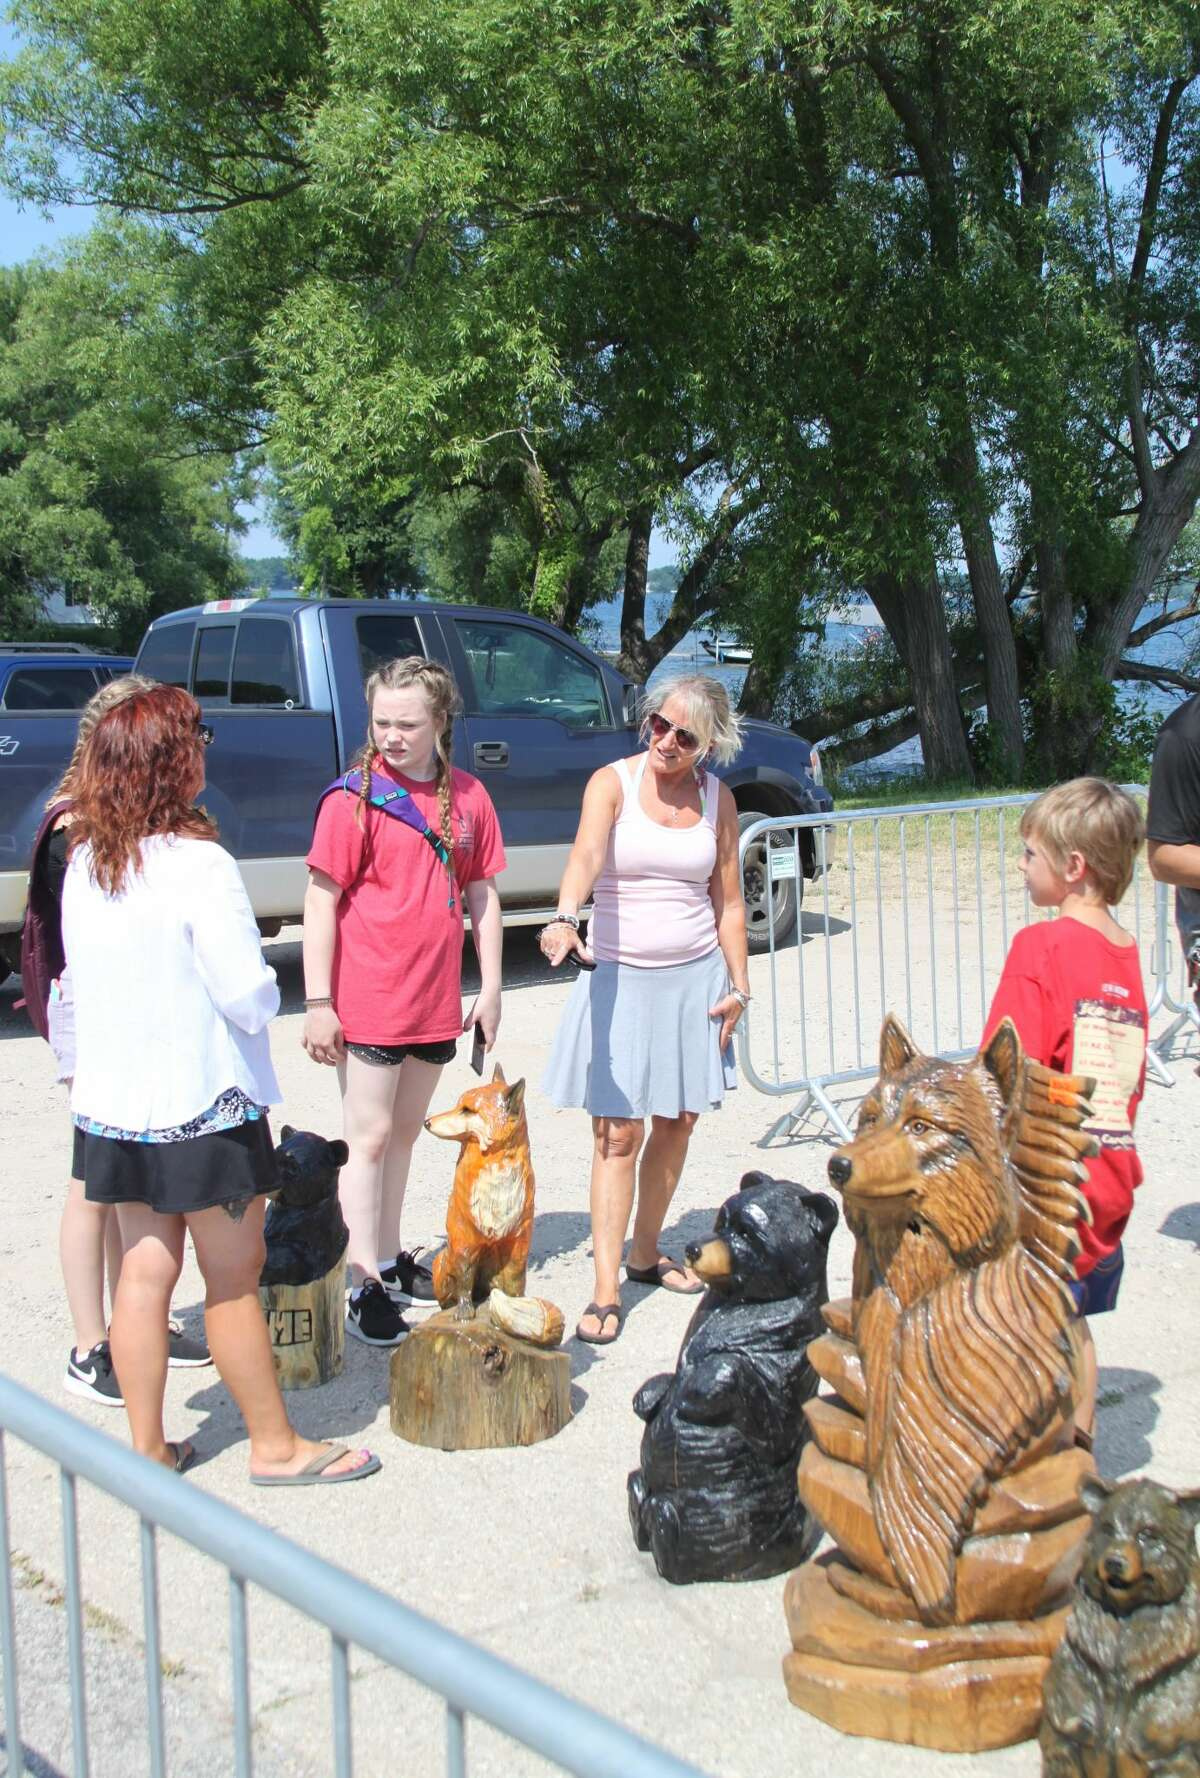 Bear Lake Days, which featured events like chainsaw carving, is cancelled.